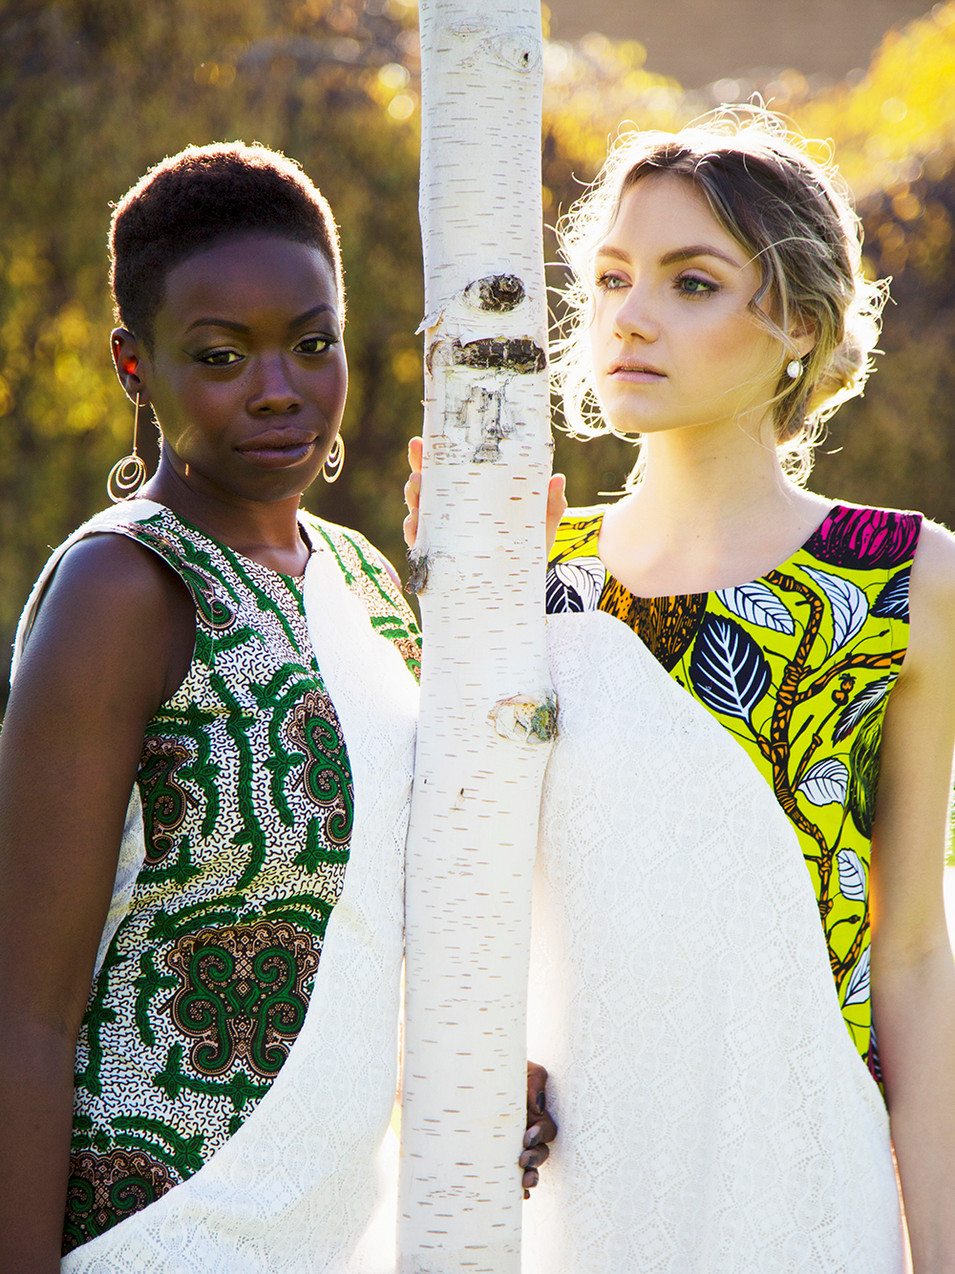 Models: Wendy Kellen & Riana Horner  Photographer: Milly Spooner  Hair & Makeup: Lilia Mullinger